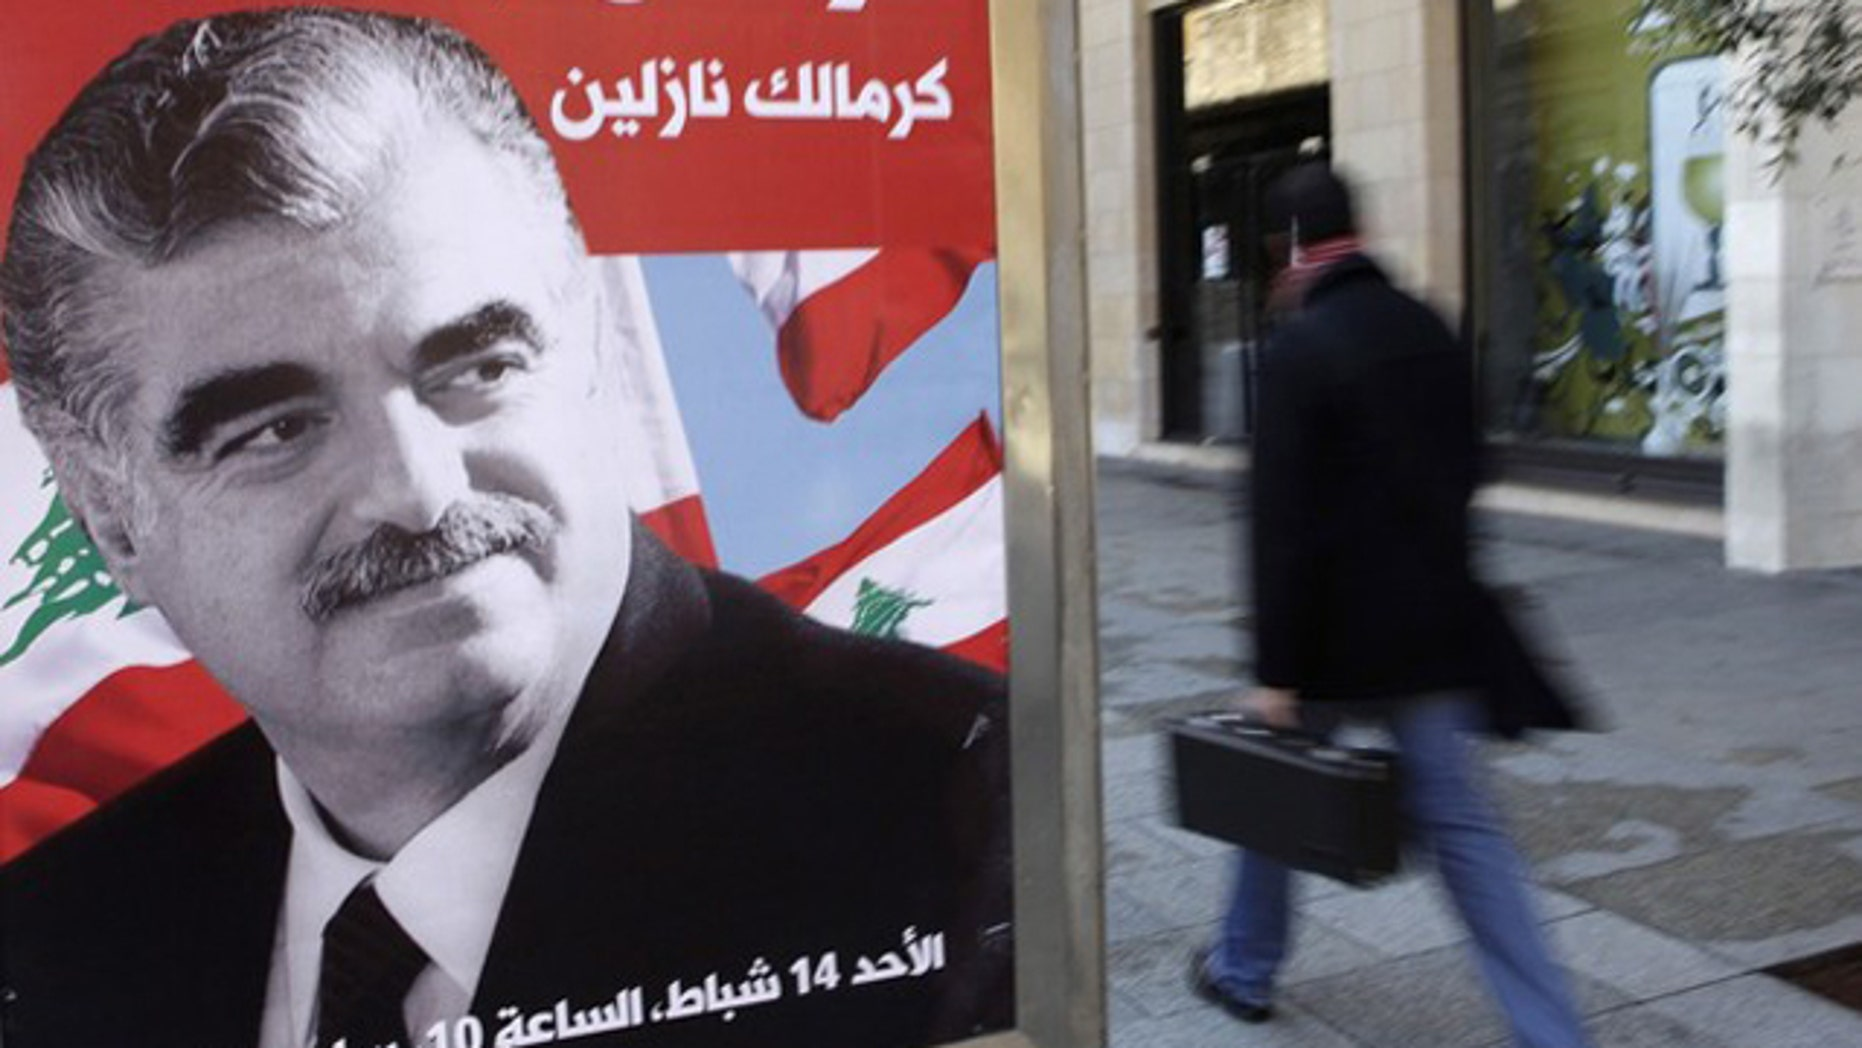 Former Lebanese Prime Minister Rafik Hariri, pictured above, was killed along with 22 other people by a huge truck bomb blast on Feb. 14, 2005, on Beirut's Mediterranean sea front (Reuters).